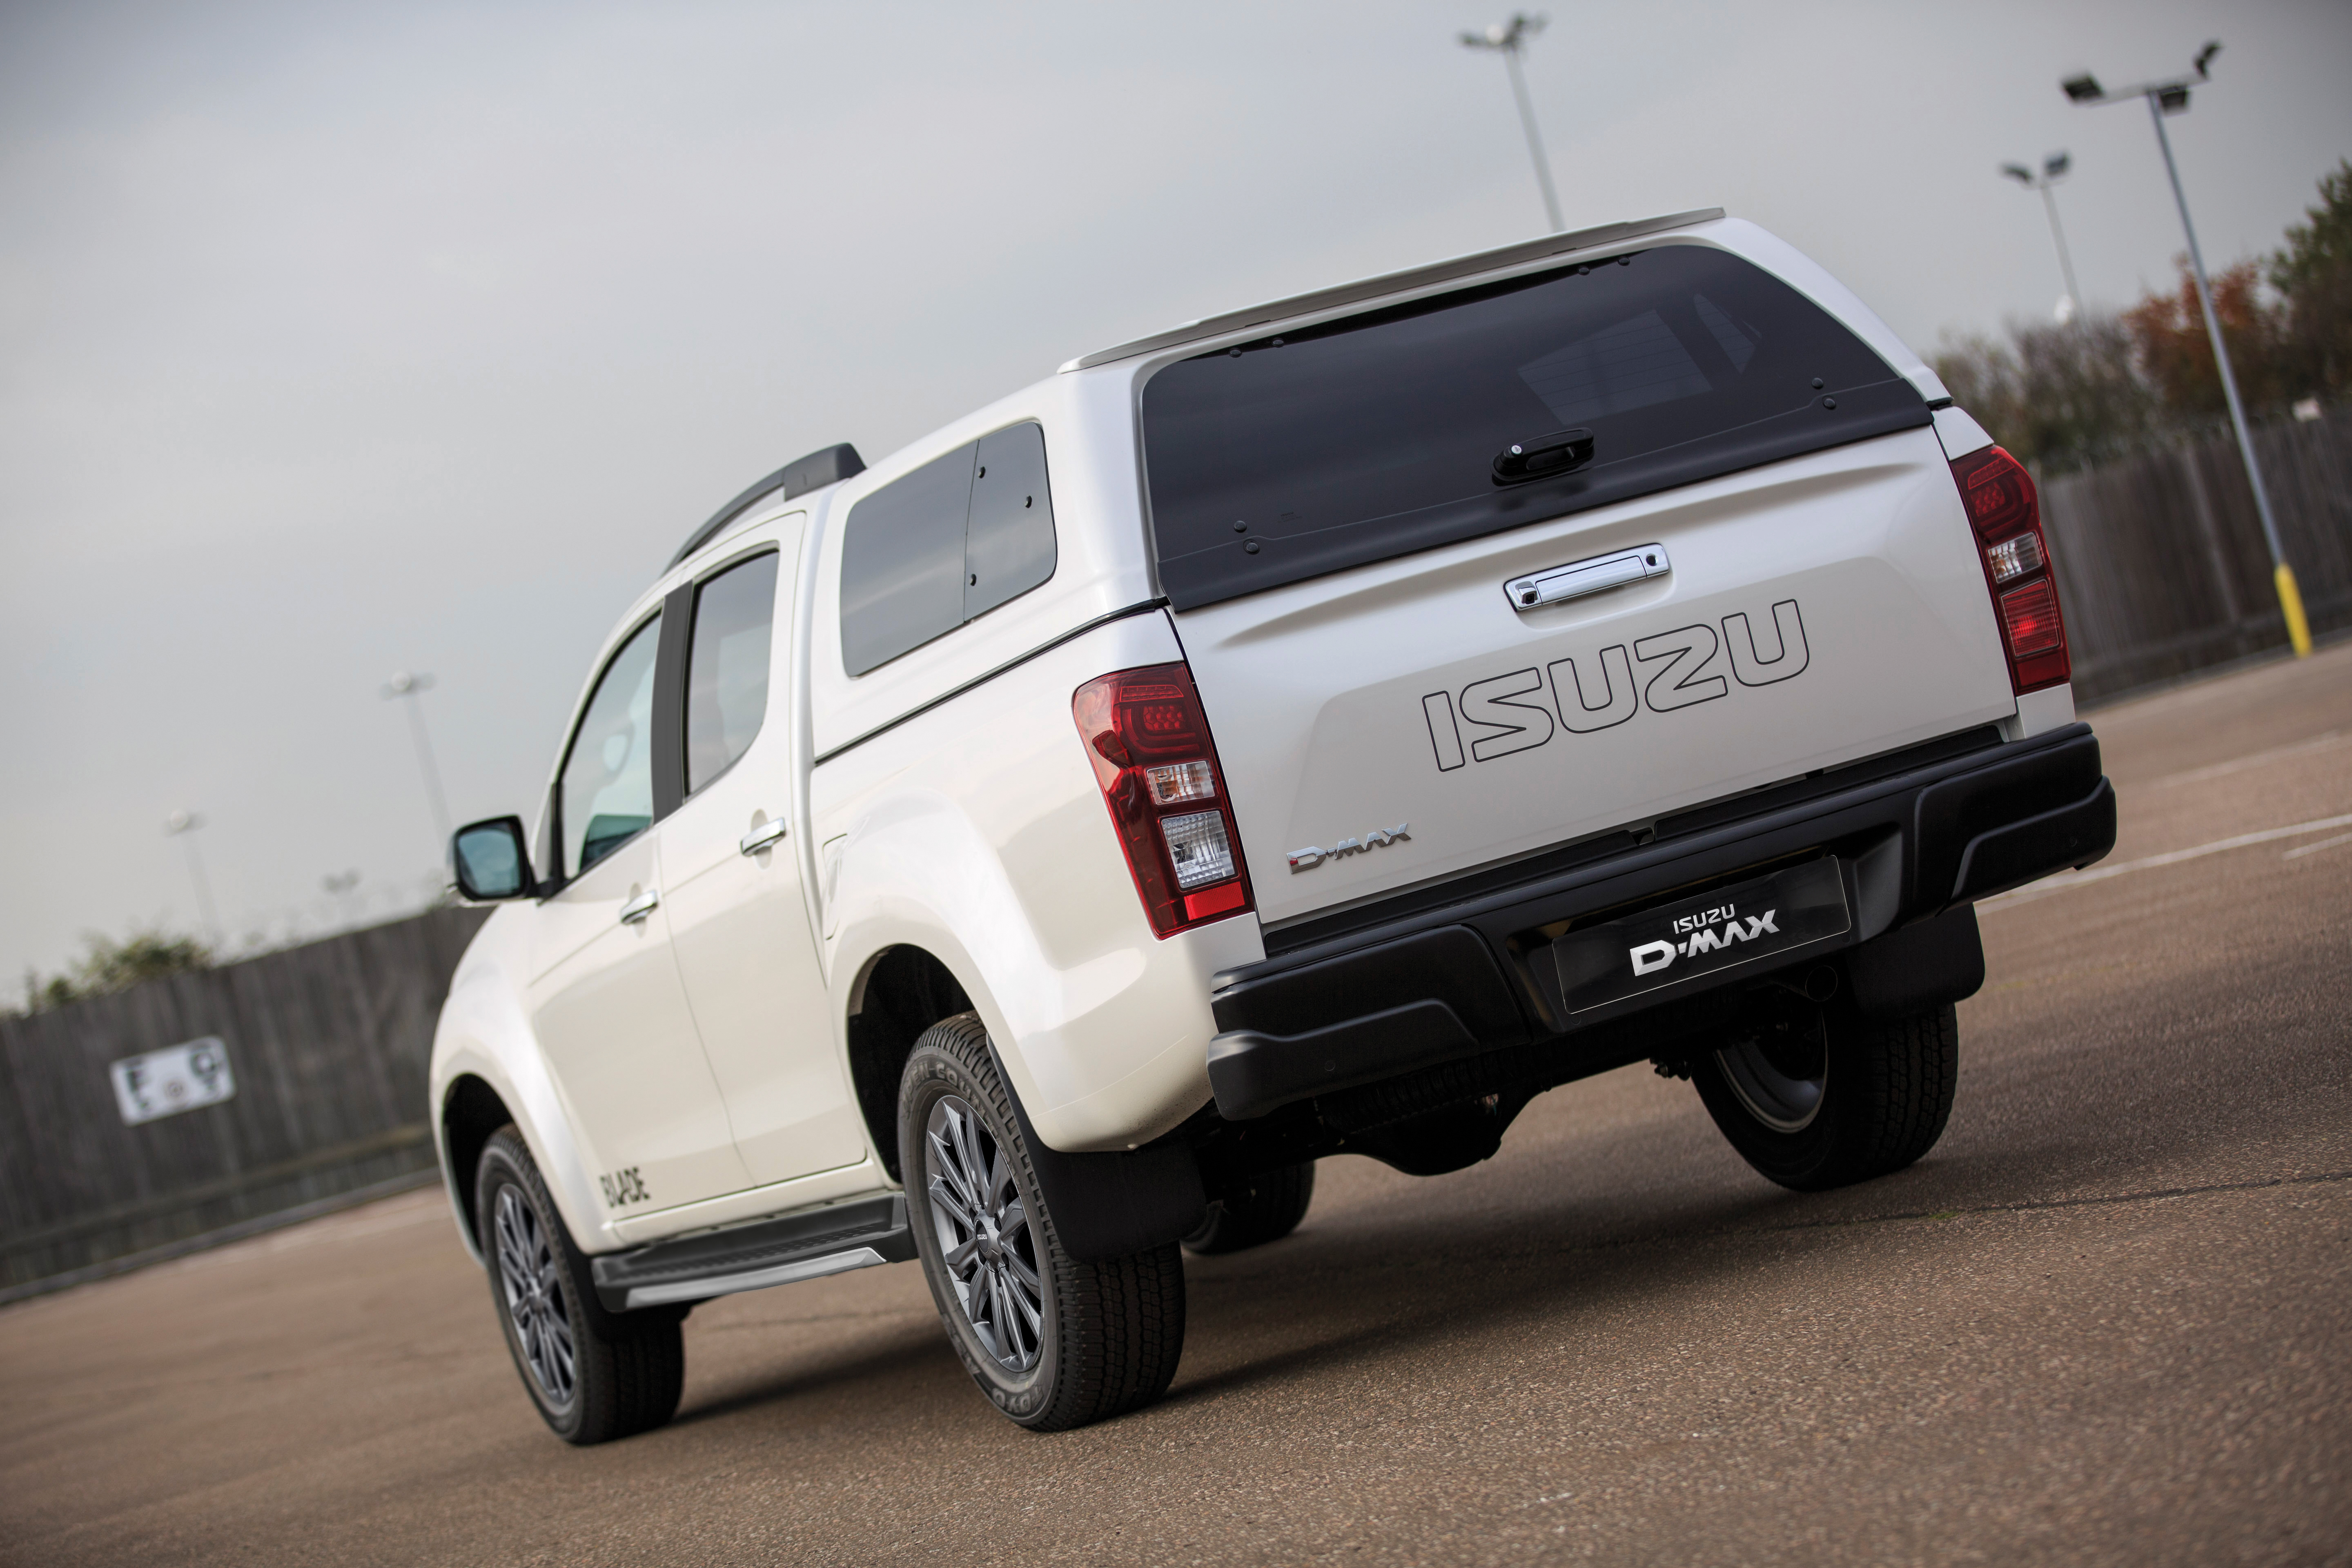 Rear view of the Isuzu D-Max Blade in white